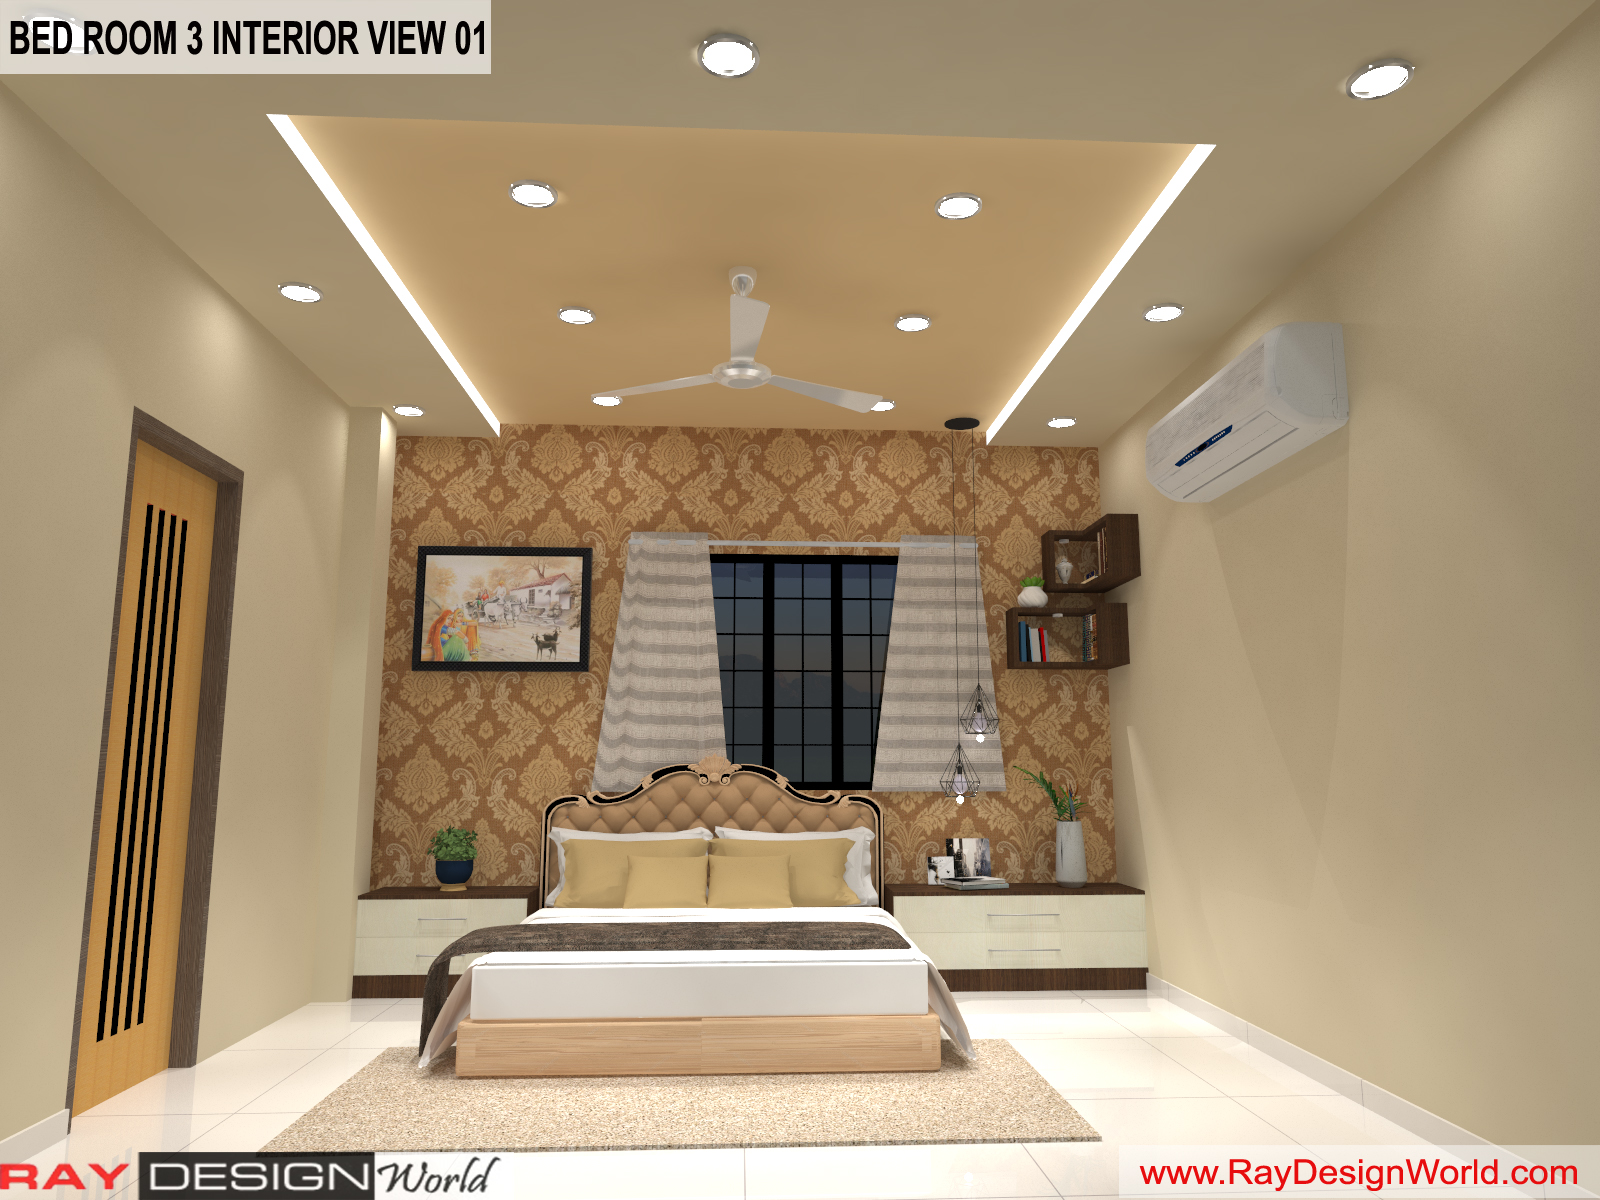 Bed Room 3 Interior Design view 01 - Vadodara Gujarat - Mr.Chirayu Soni